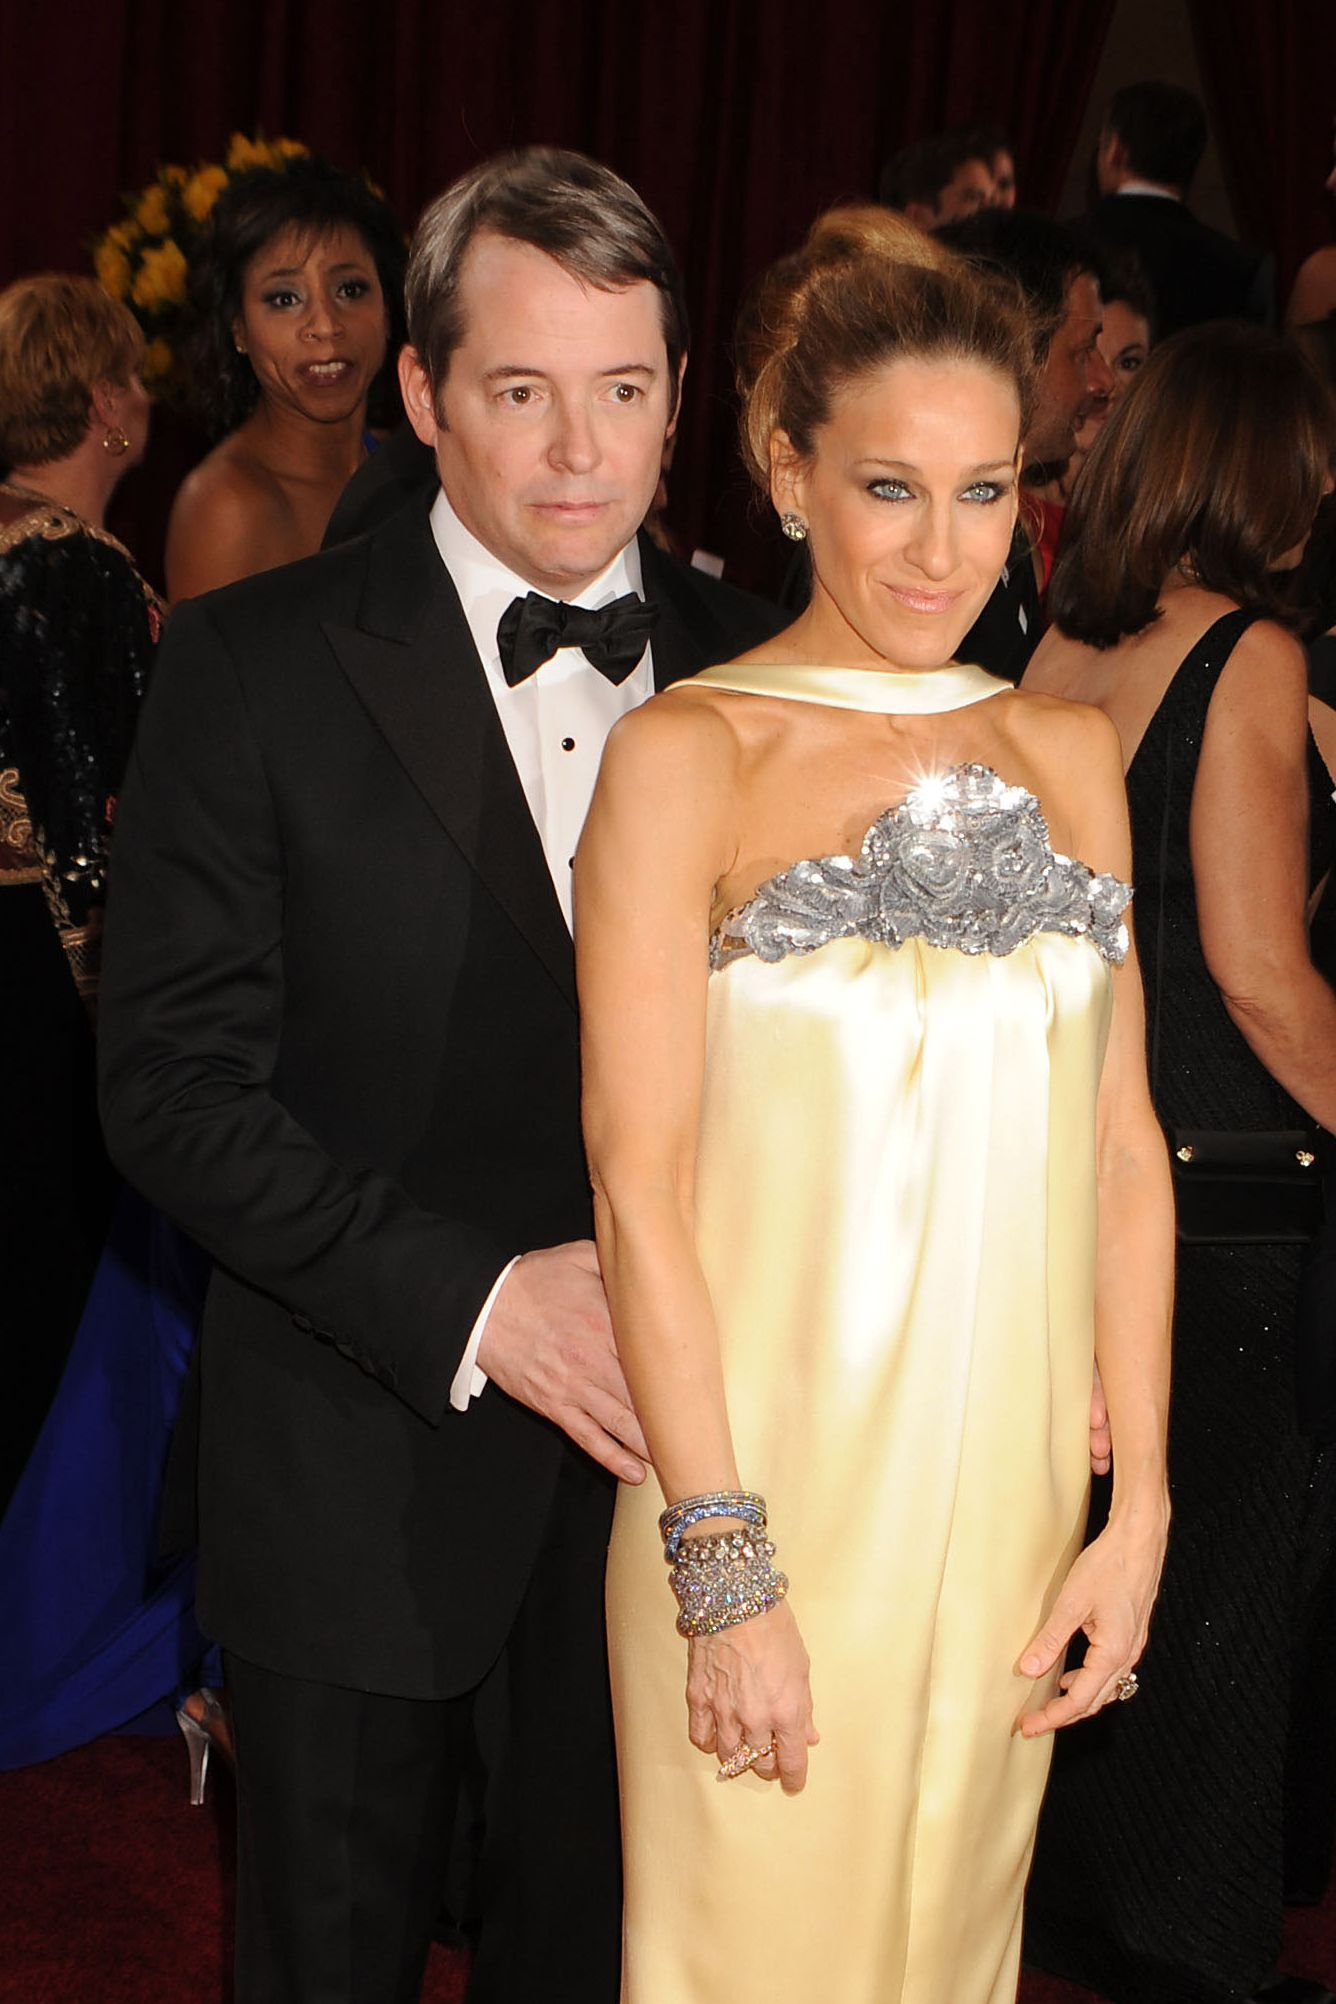 HOLLYWOOD - MARCH 07: Actress Sarah Jessica Parker (R) and Actor Matthew Broderick arrive at the 82nd Annual Academy Awards held at the Kodak Theatre on March 7, 2010 in Hollywood, California. (Photo by Jeffrey Mayer/WireImage)